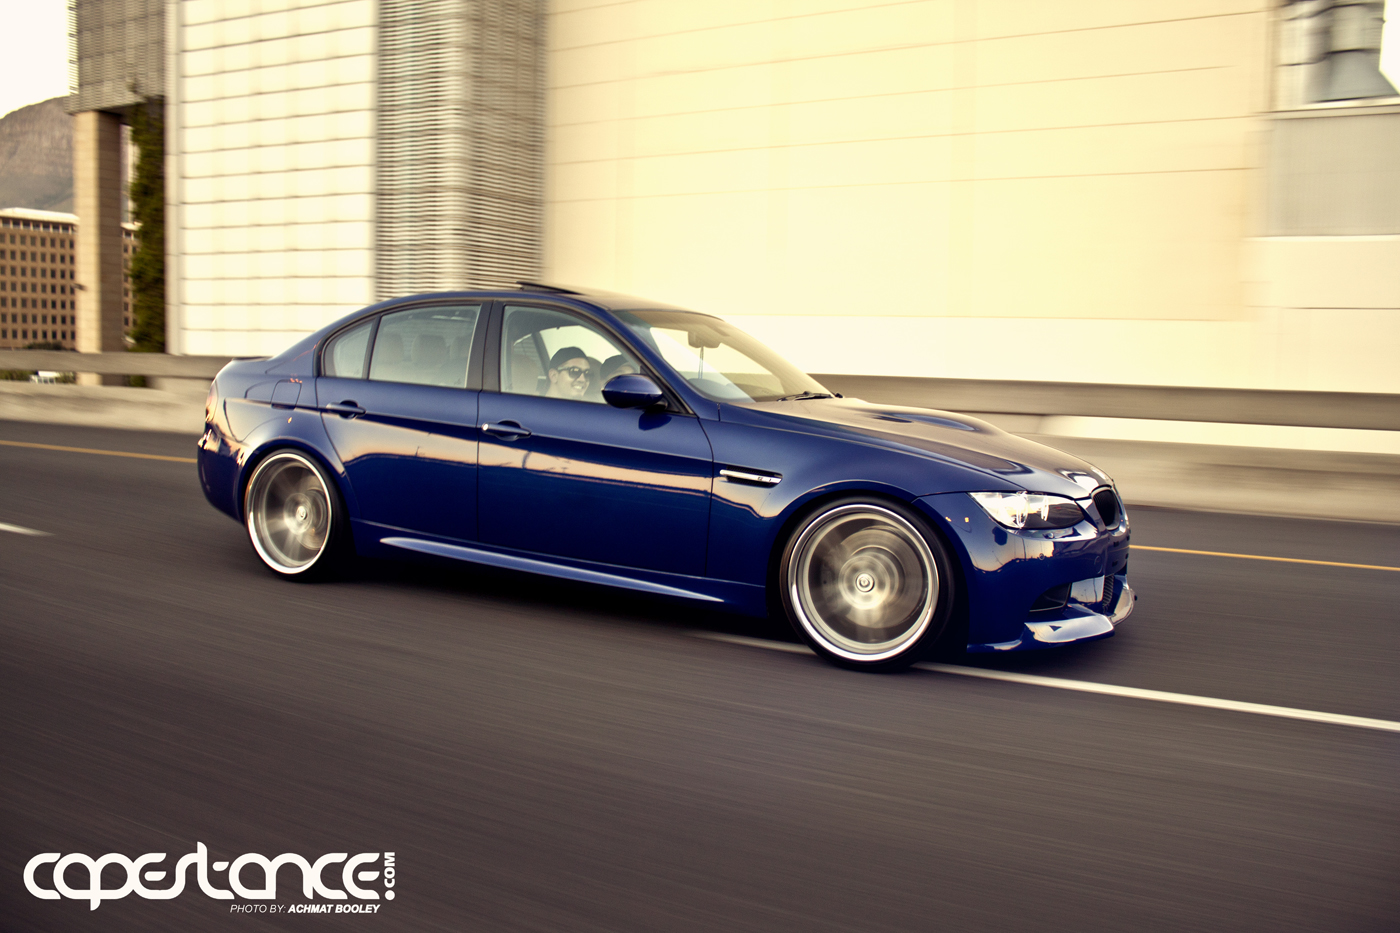 Ridhaa Cornelius Brutal M3 By Capestance